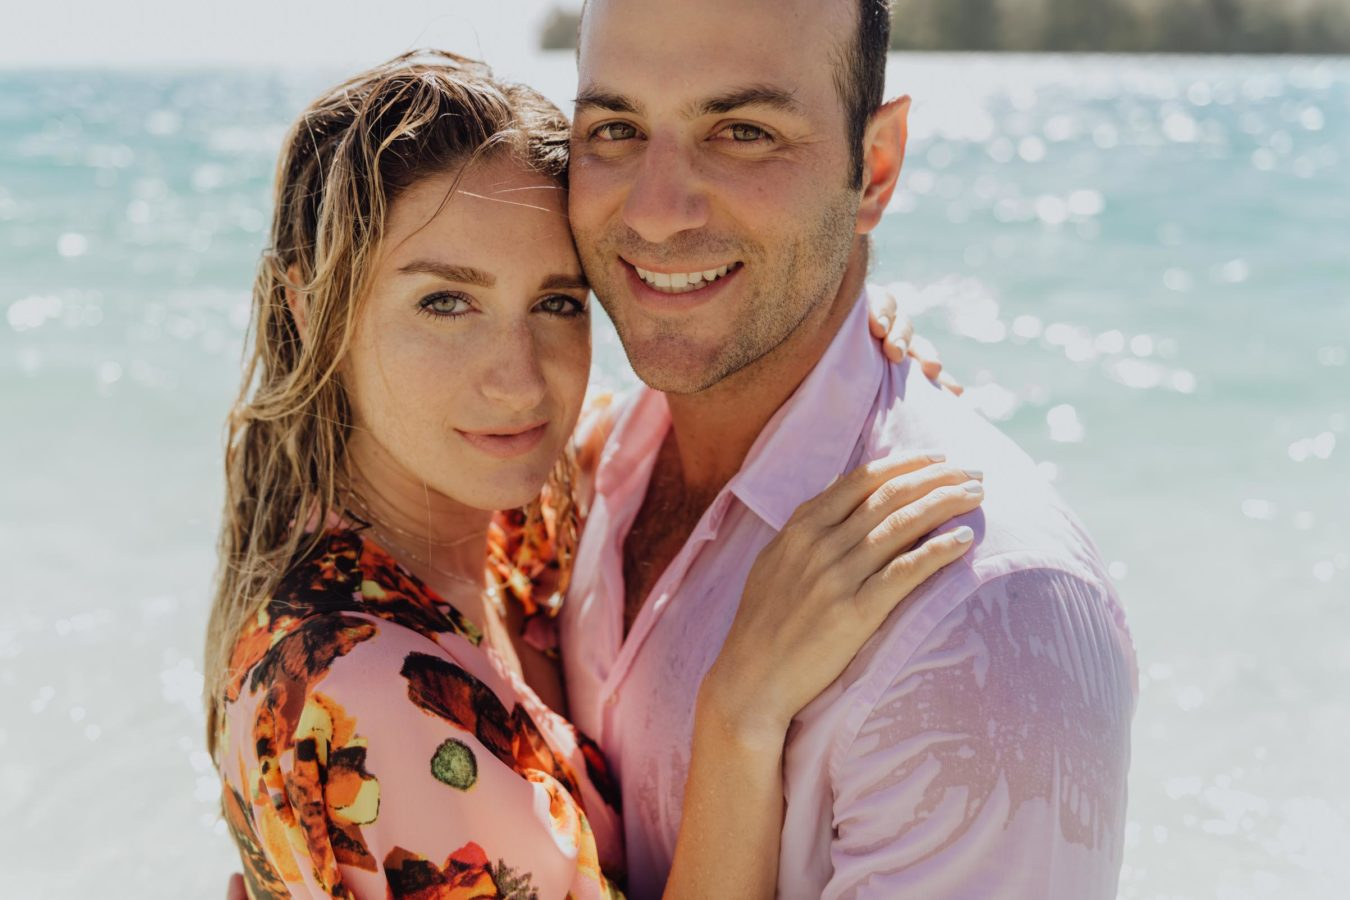 Fun couple photoshoot in Moorea